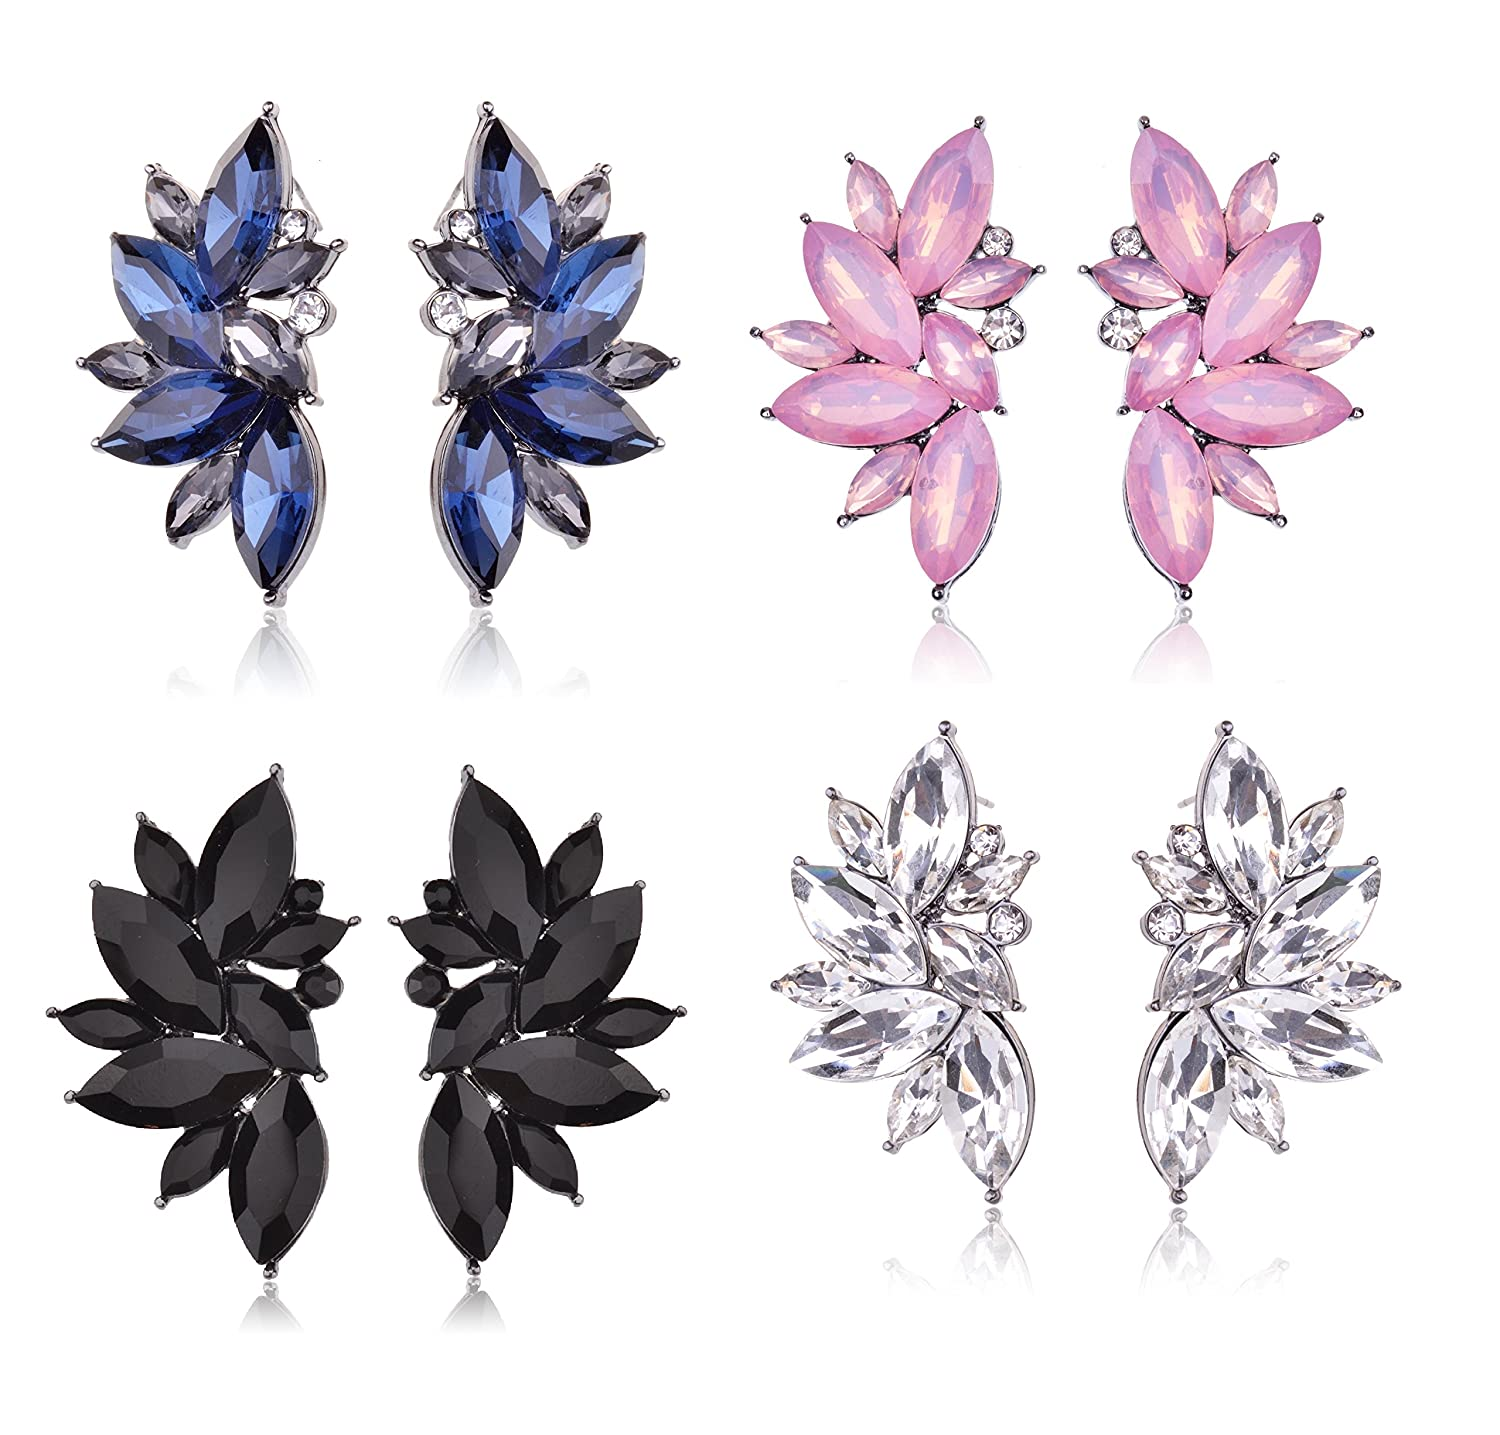 Cluster Crystal Teardrop Flower Design Stud Earrings Fine Jewelry for Women Valentines Day Gifts for Her Ginasy ER-10128-Black